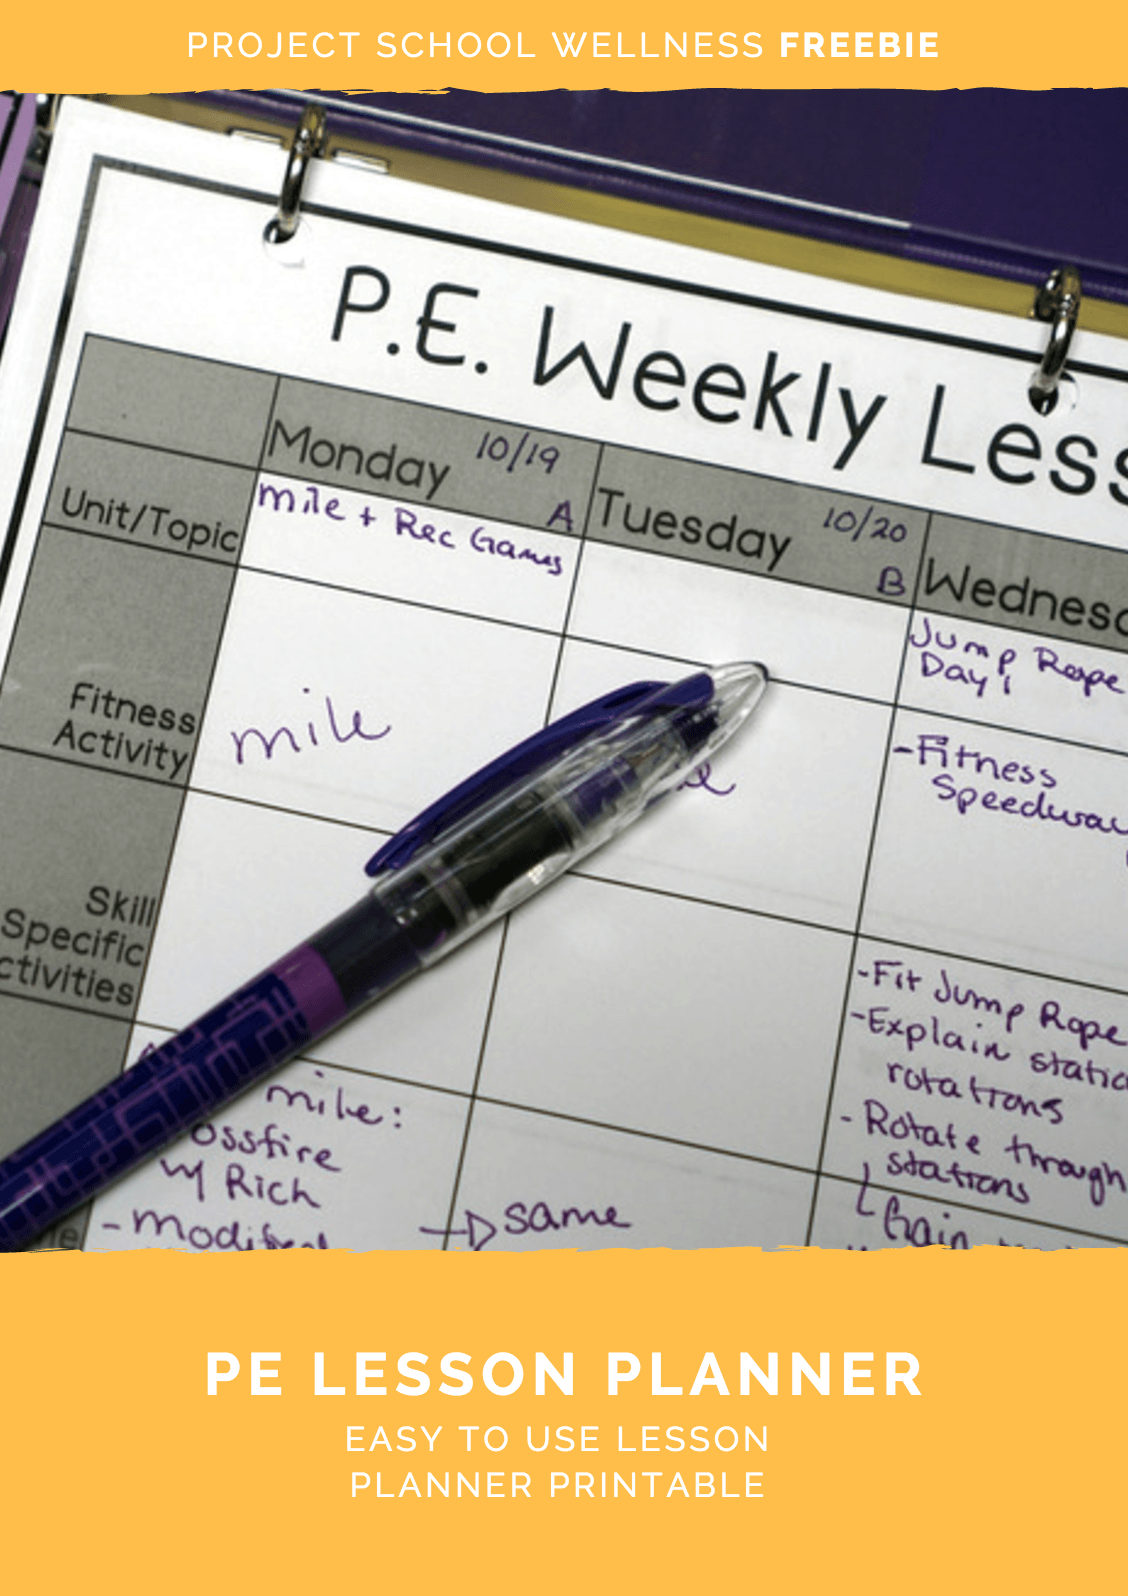 Making lesson planning easier with this PE Weekly Lesson Planner freebie! This is perfect for every PE teacher looking for ways to make lesson and unit planning a more smooth process. Click to download this PE freebie from Project School Wellness!